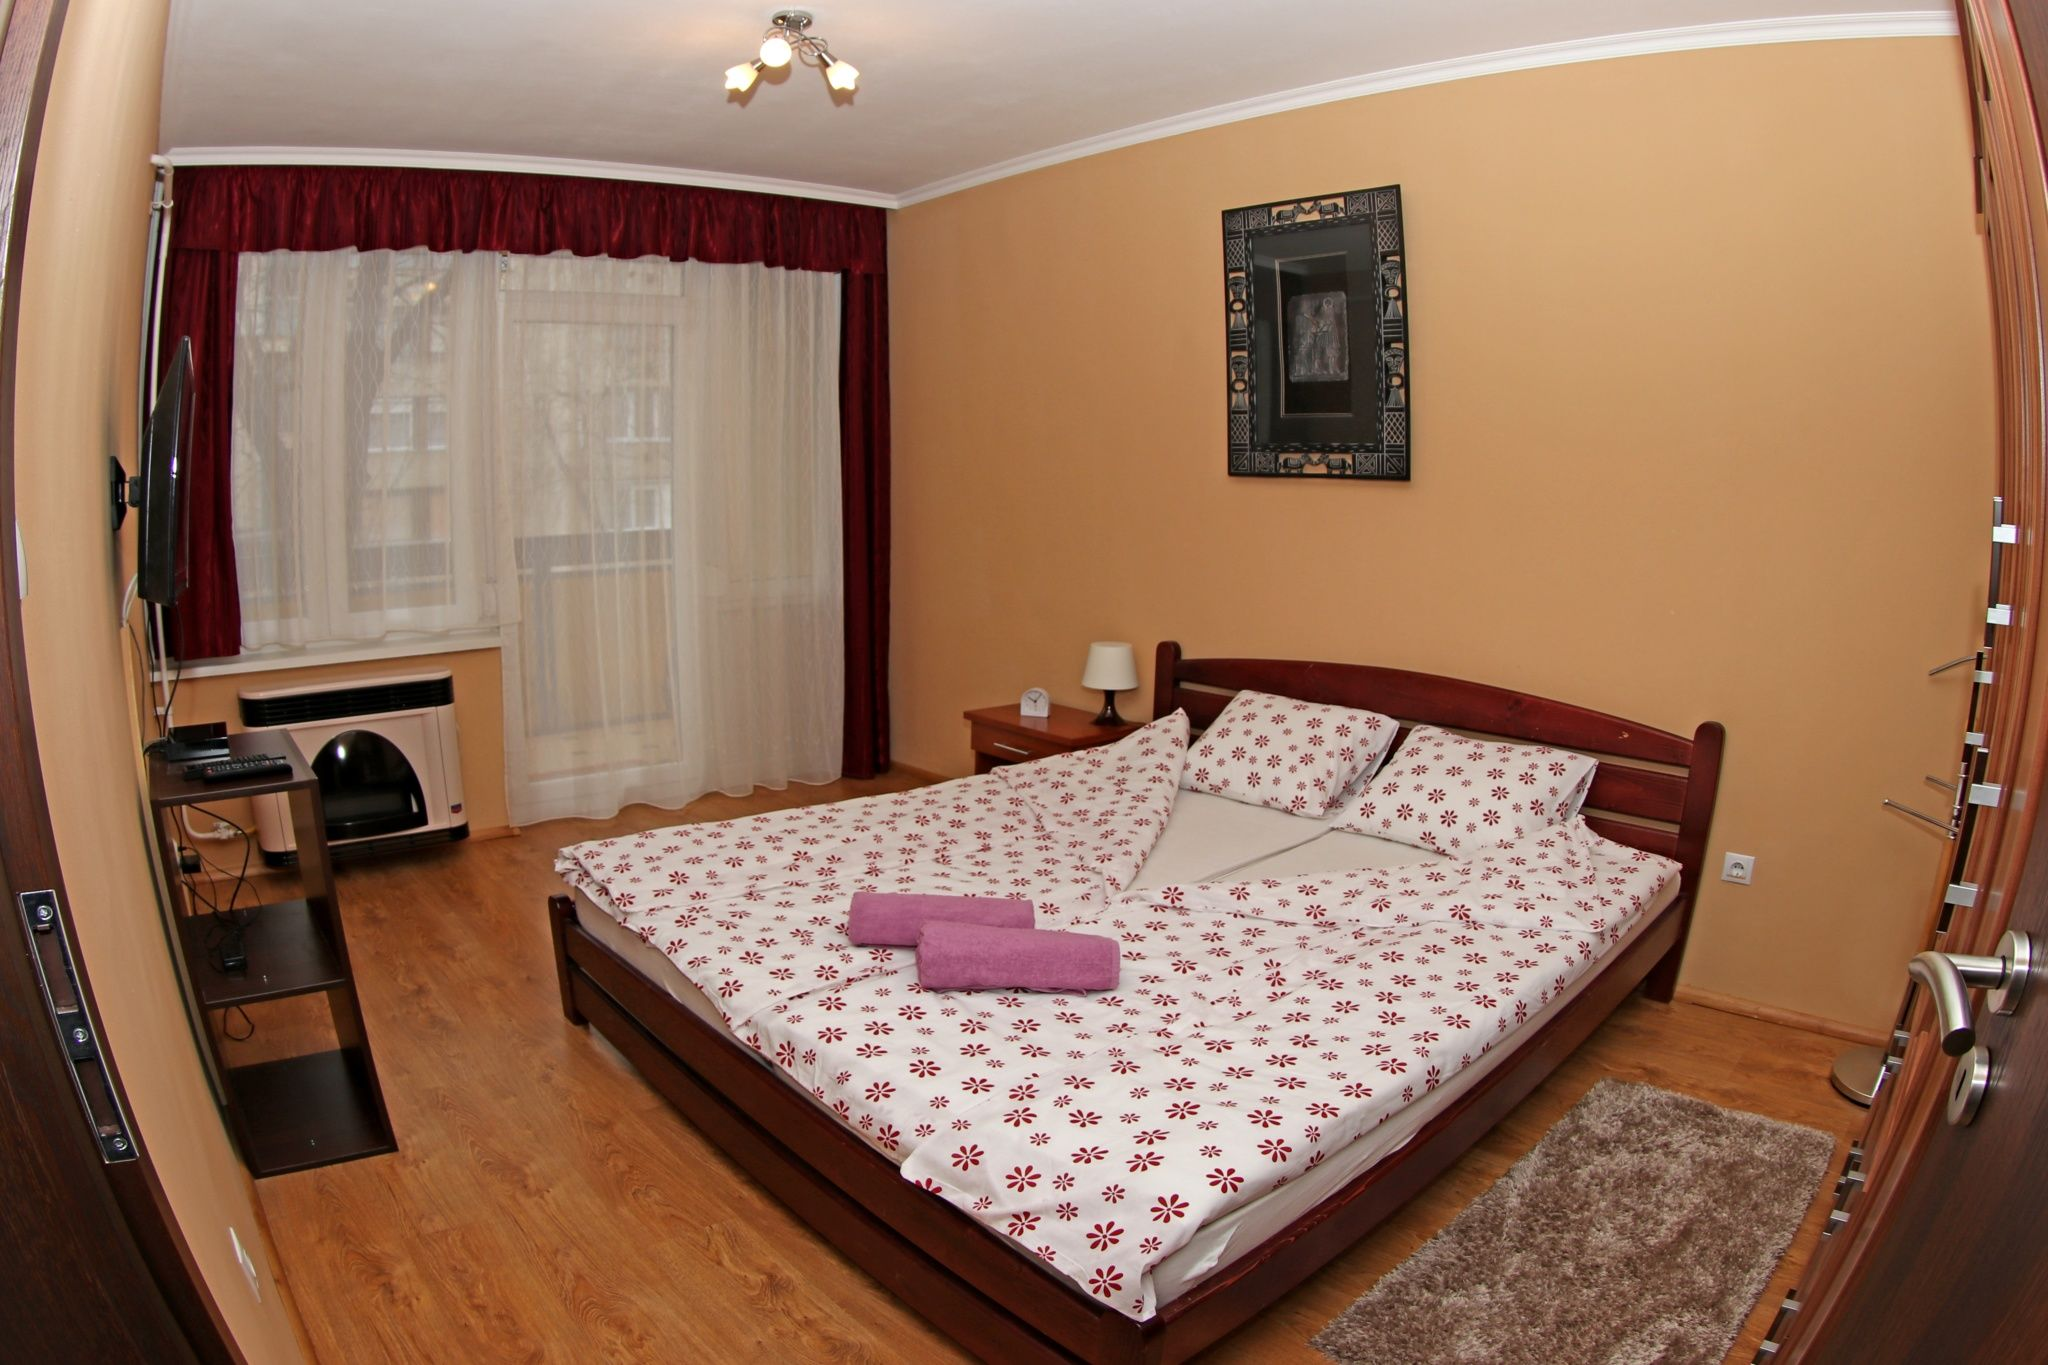 47f135001d Kálló (Hungary) accommodations - 83 offers - Revngo.com